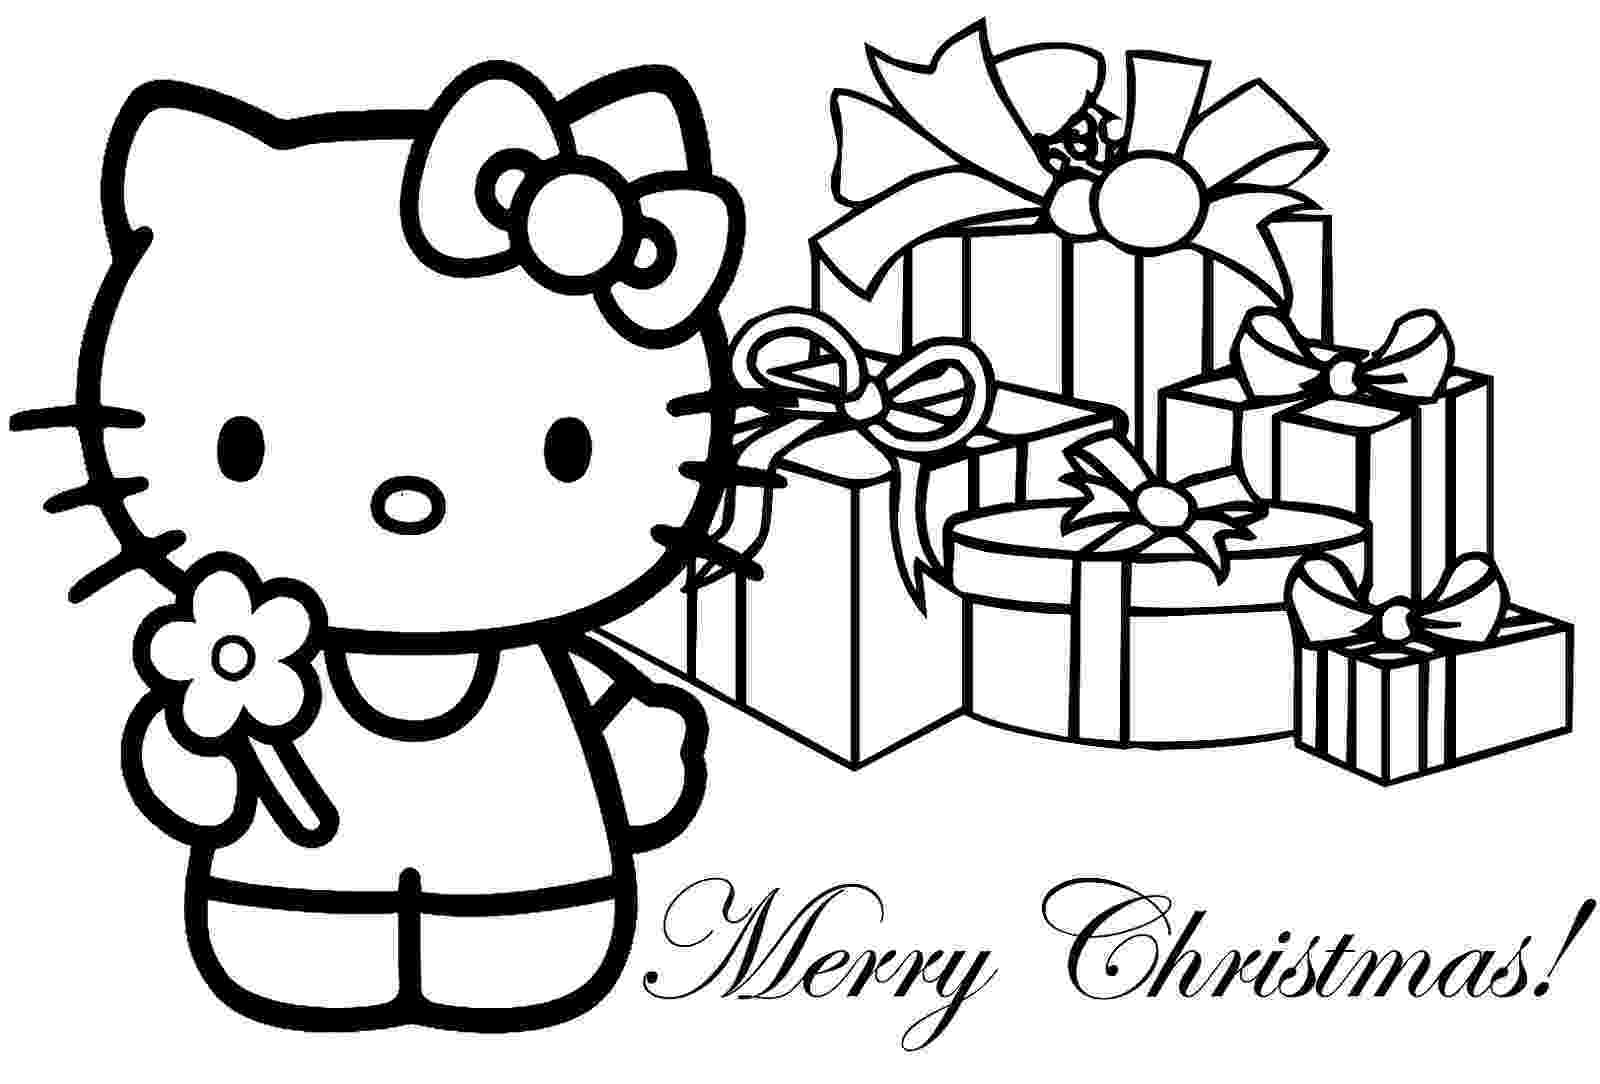 christmas coloring sheets free free printable charlie brown christmas coloring pages for free christmas coloring sheets